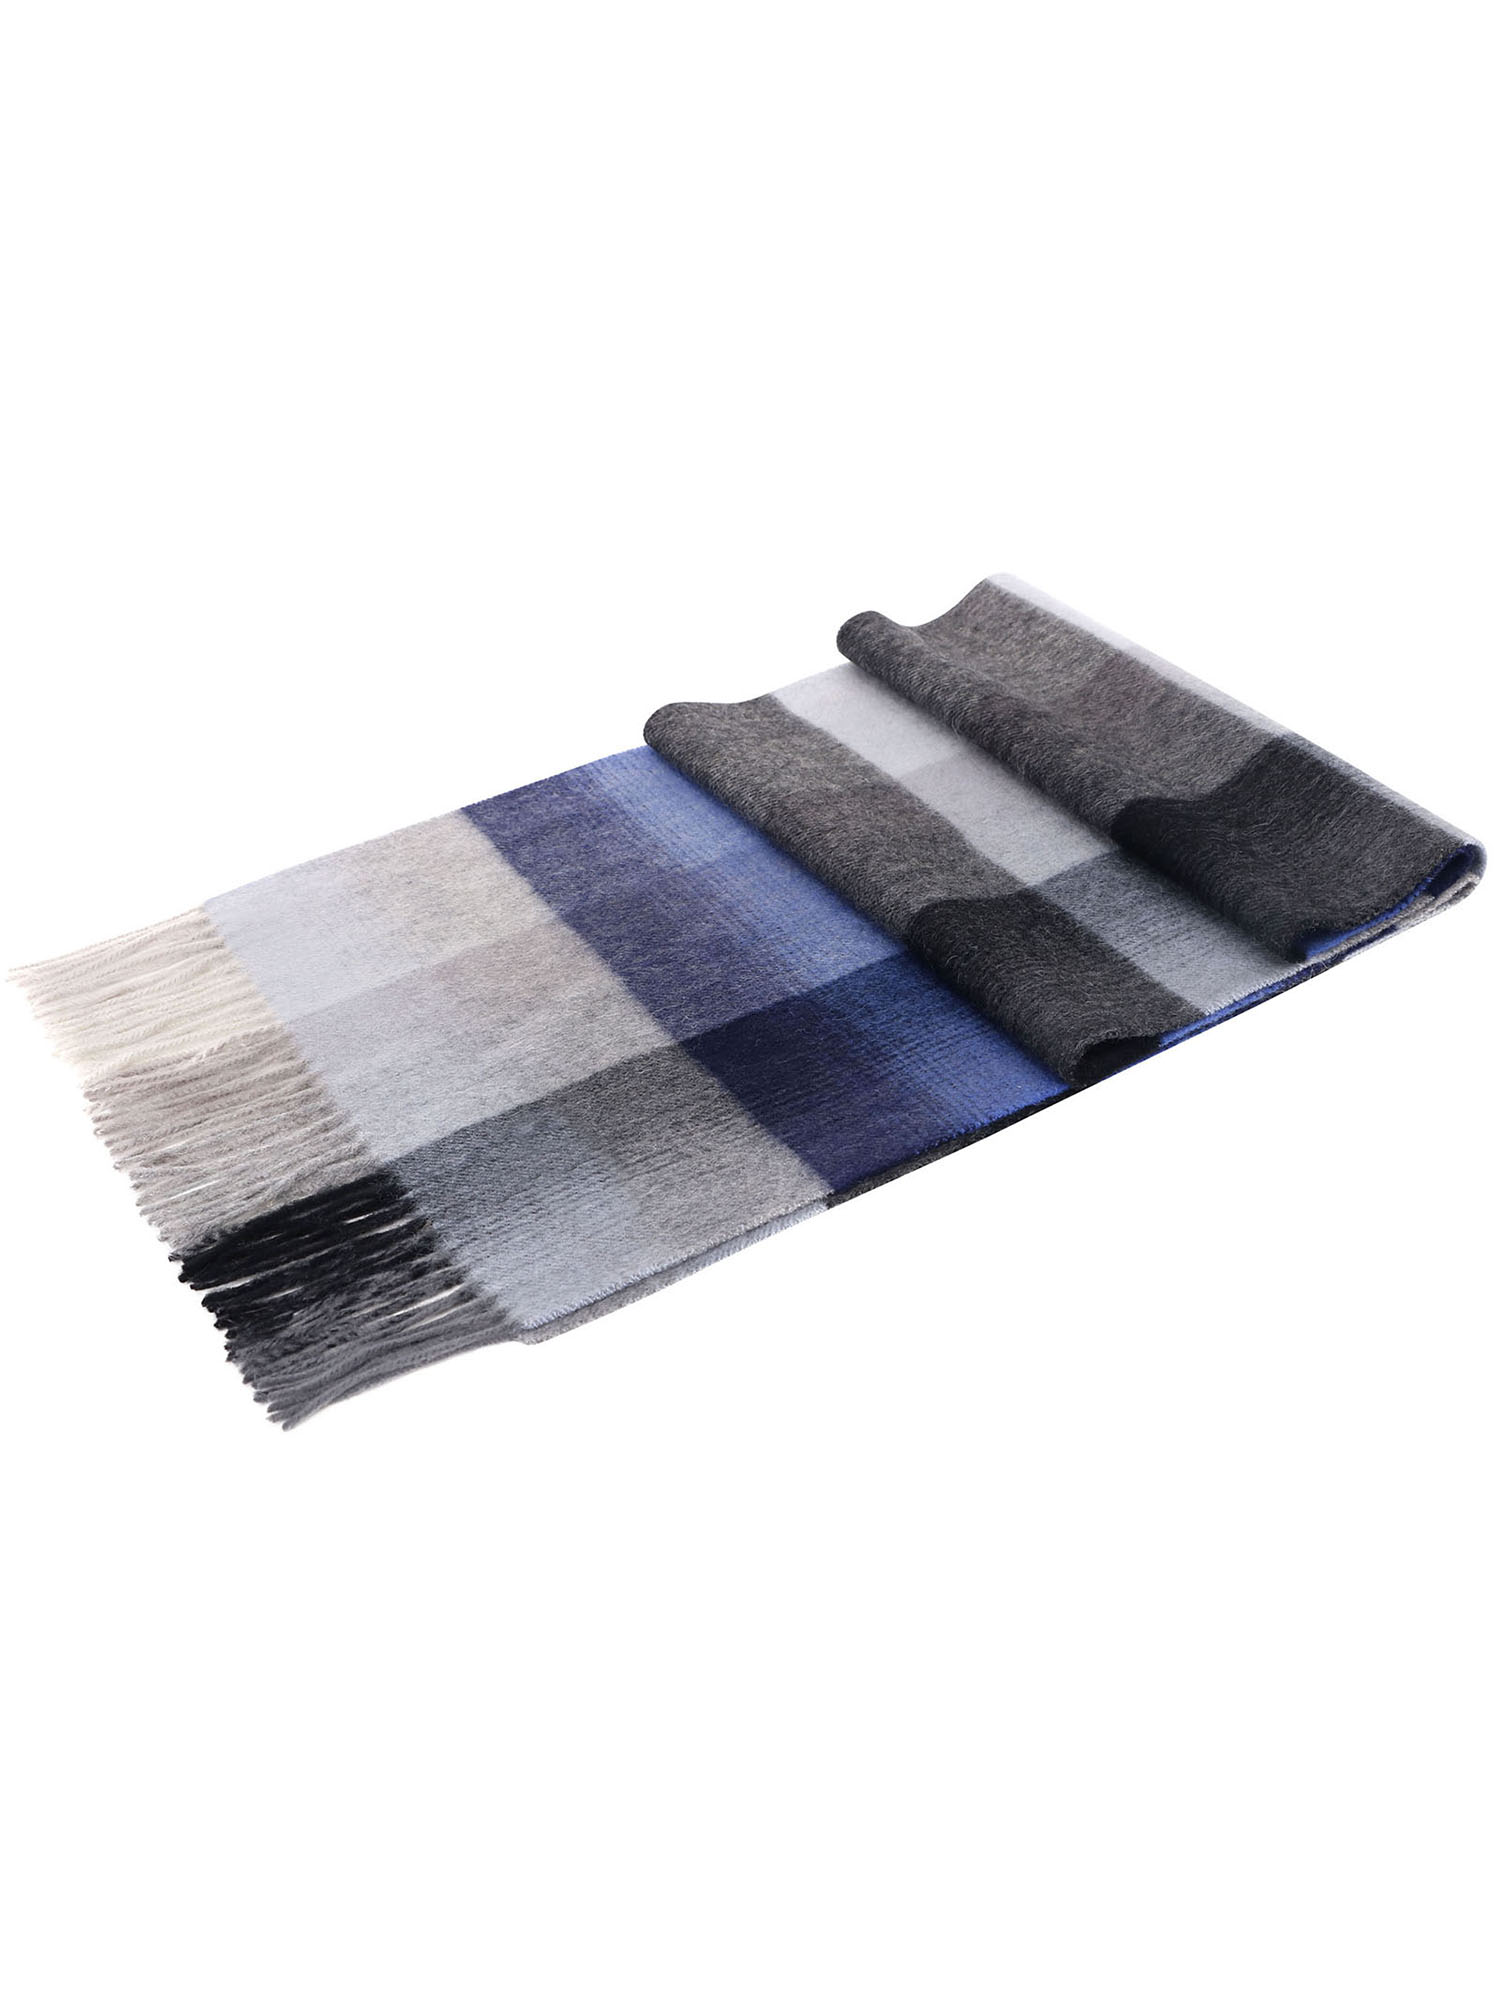 "Luxurious Men's Cashmere Scarf Wraps Shawls Stole w/ Gift Box, 64.5"" x 11.8"""